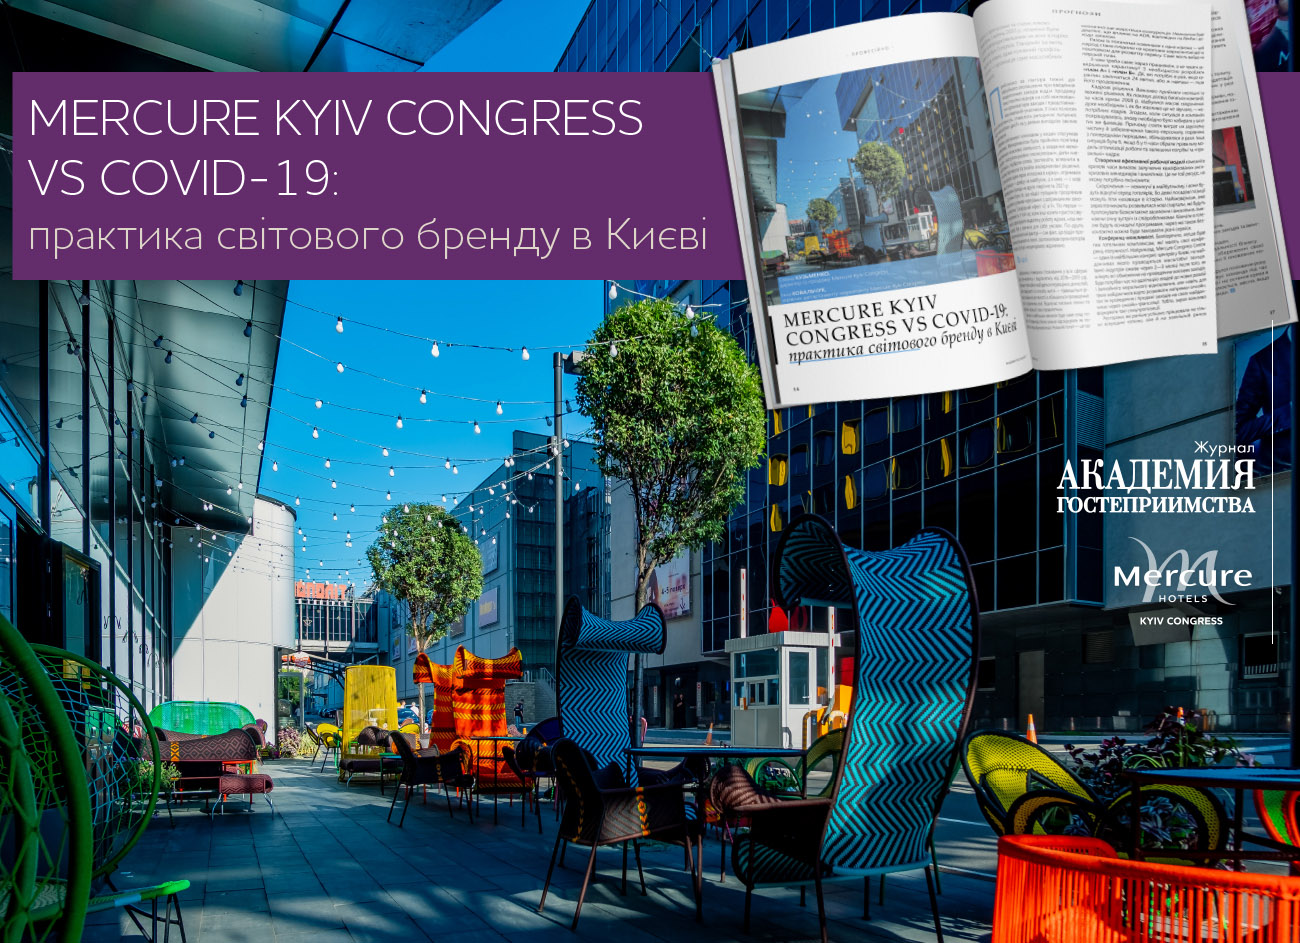 Mercure Kyiv Congress VS COVID - 19: global brand practice in Kyiv